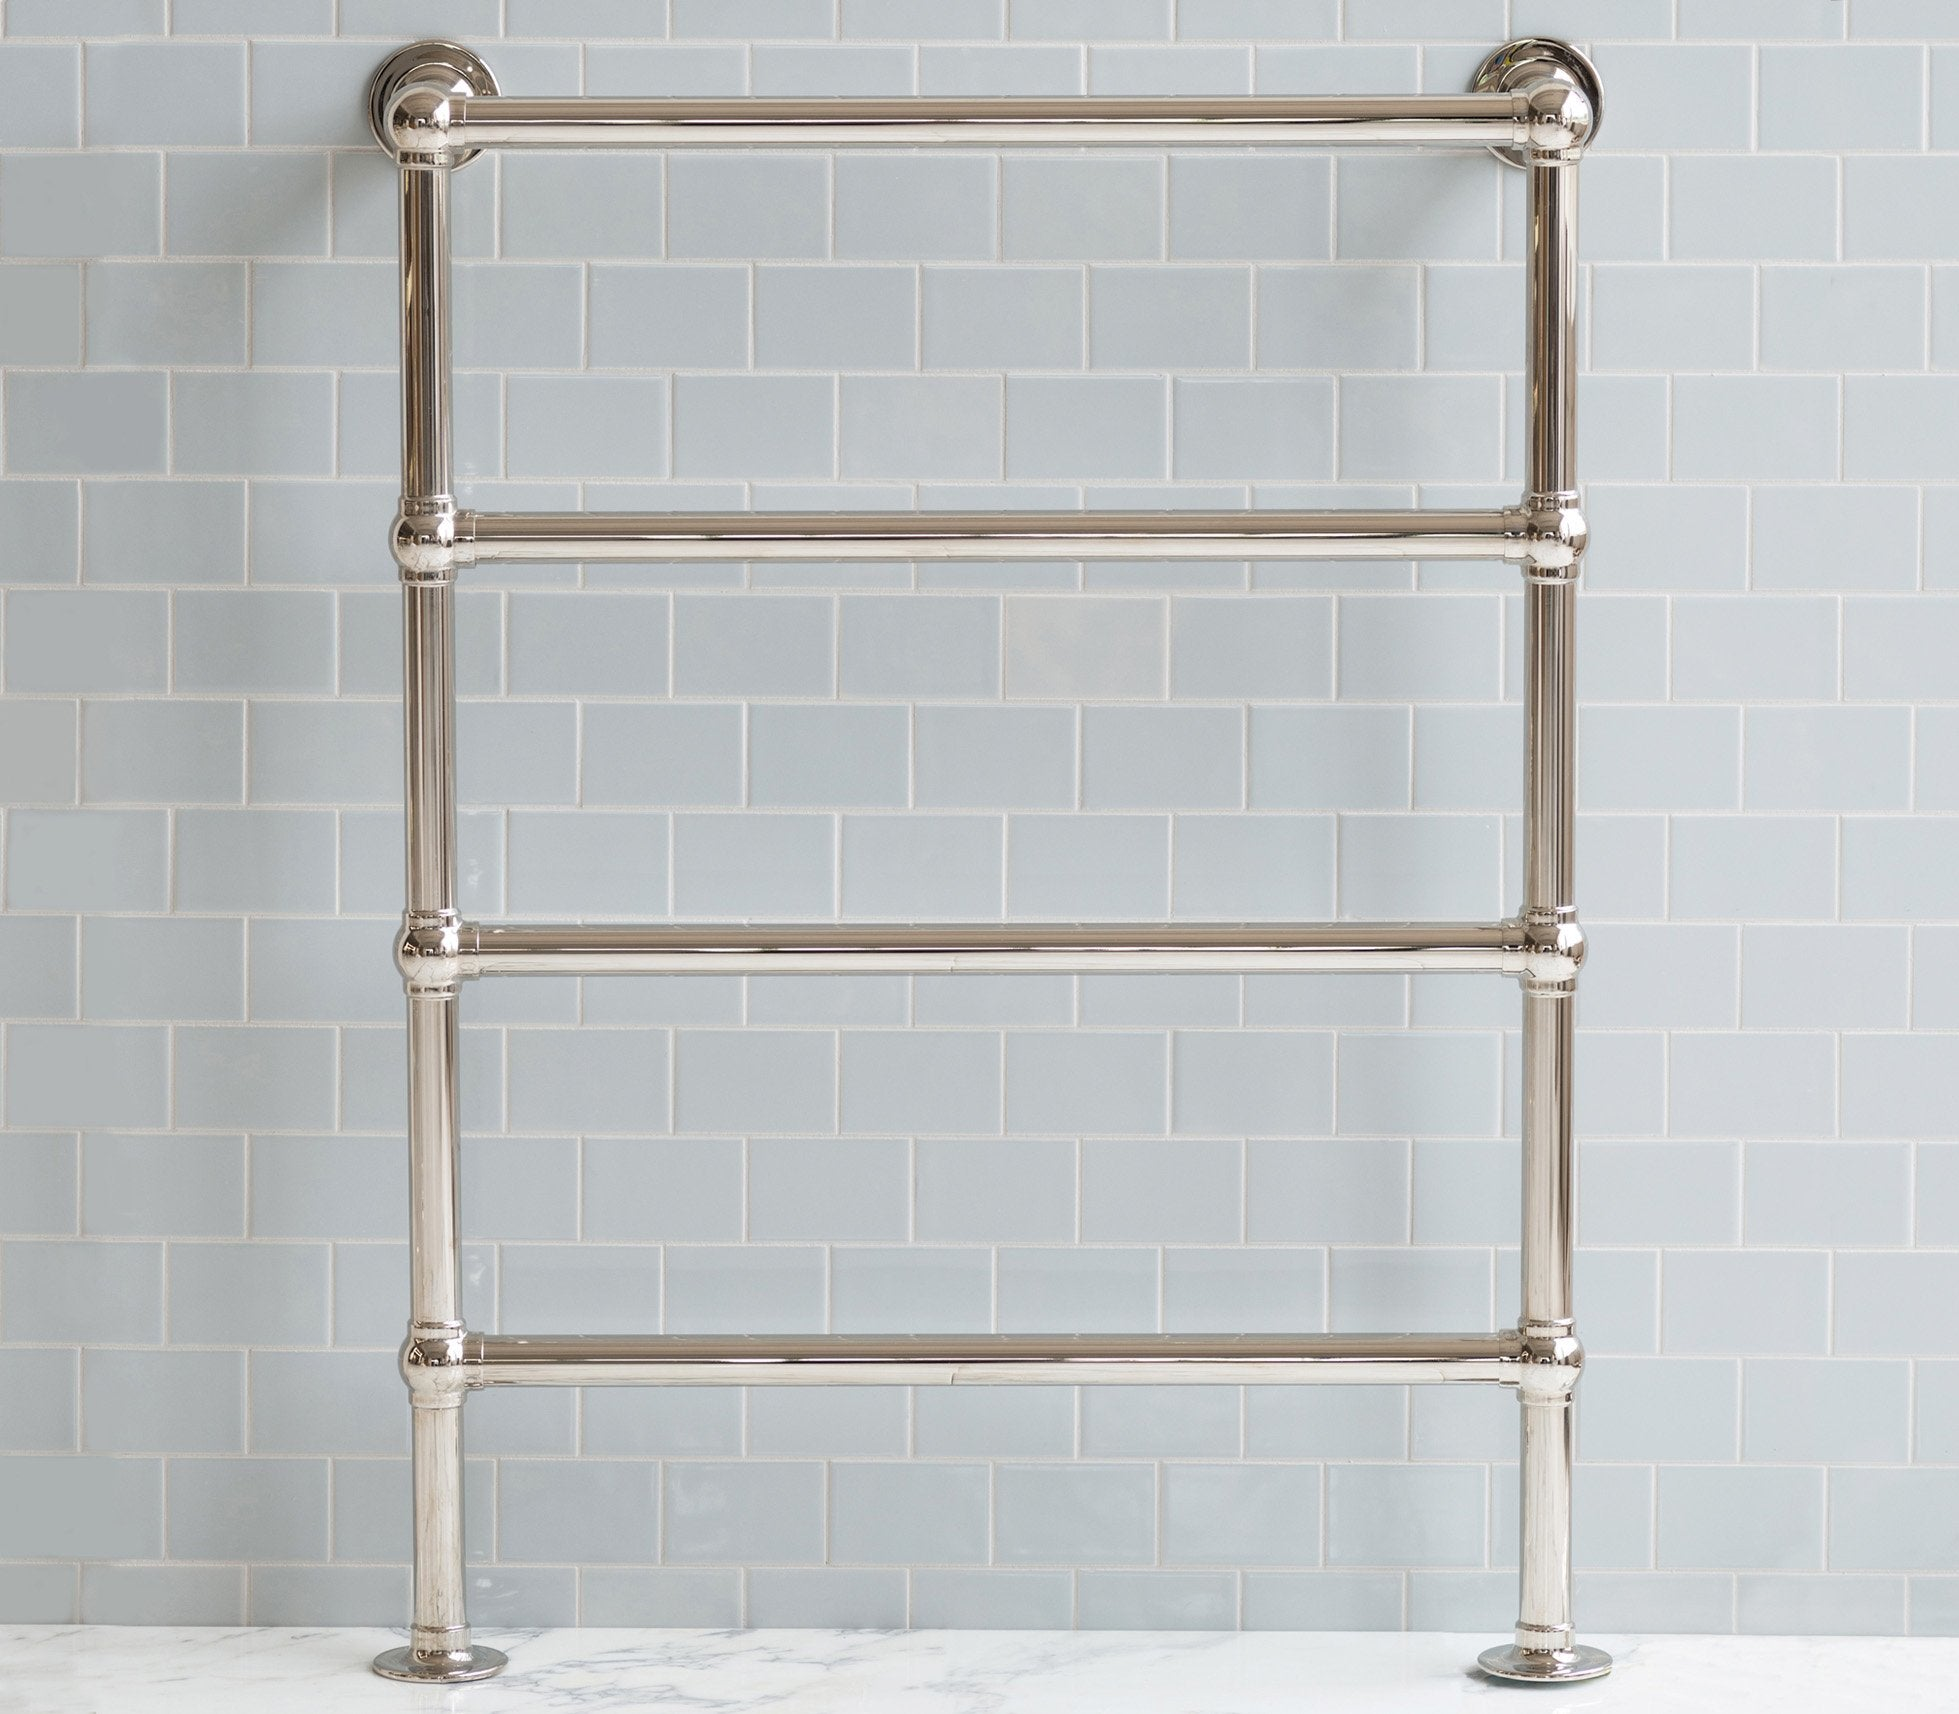 Classic Towel Warmer 4 Bar Floor-to-Wall Product Image 2